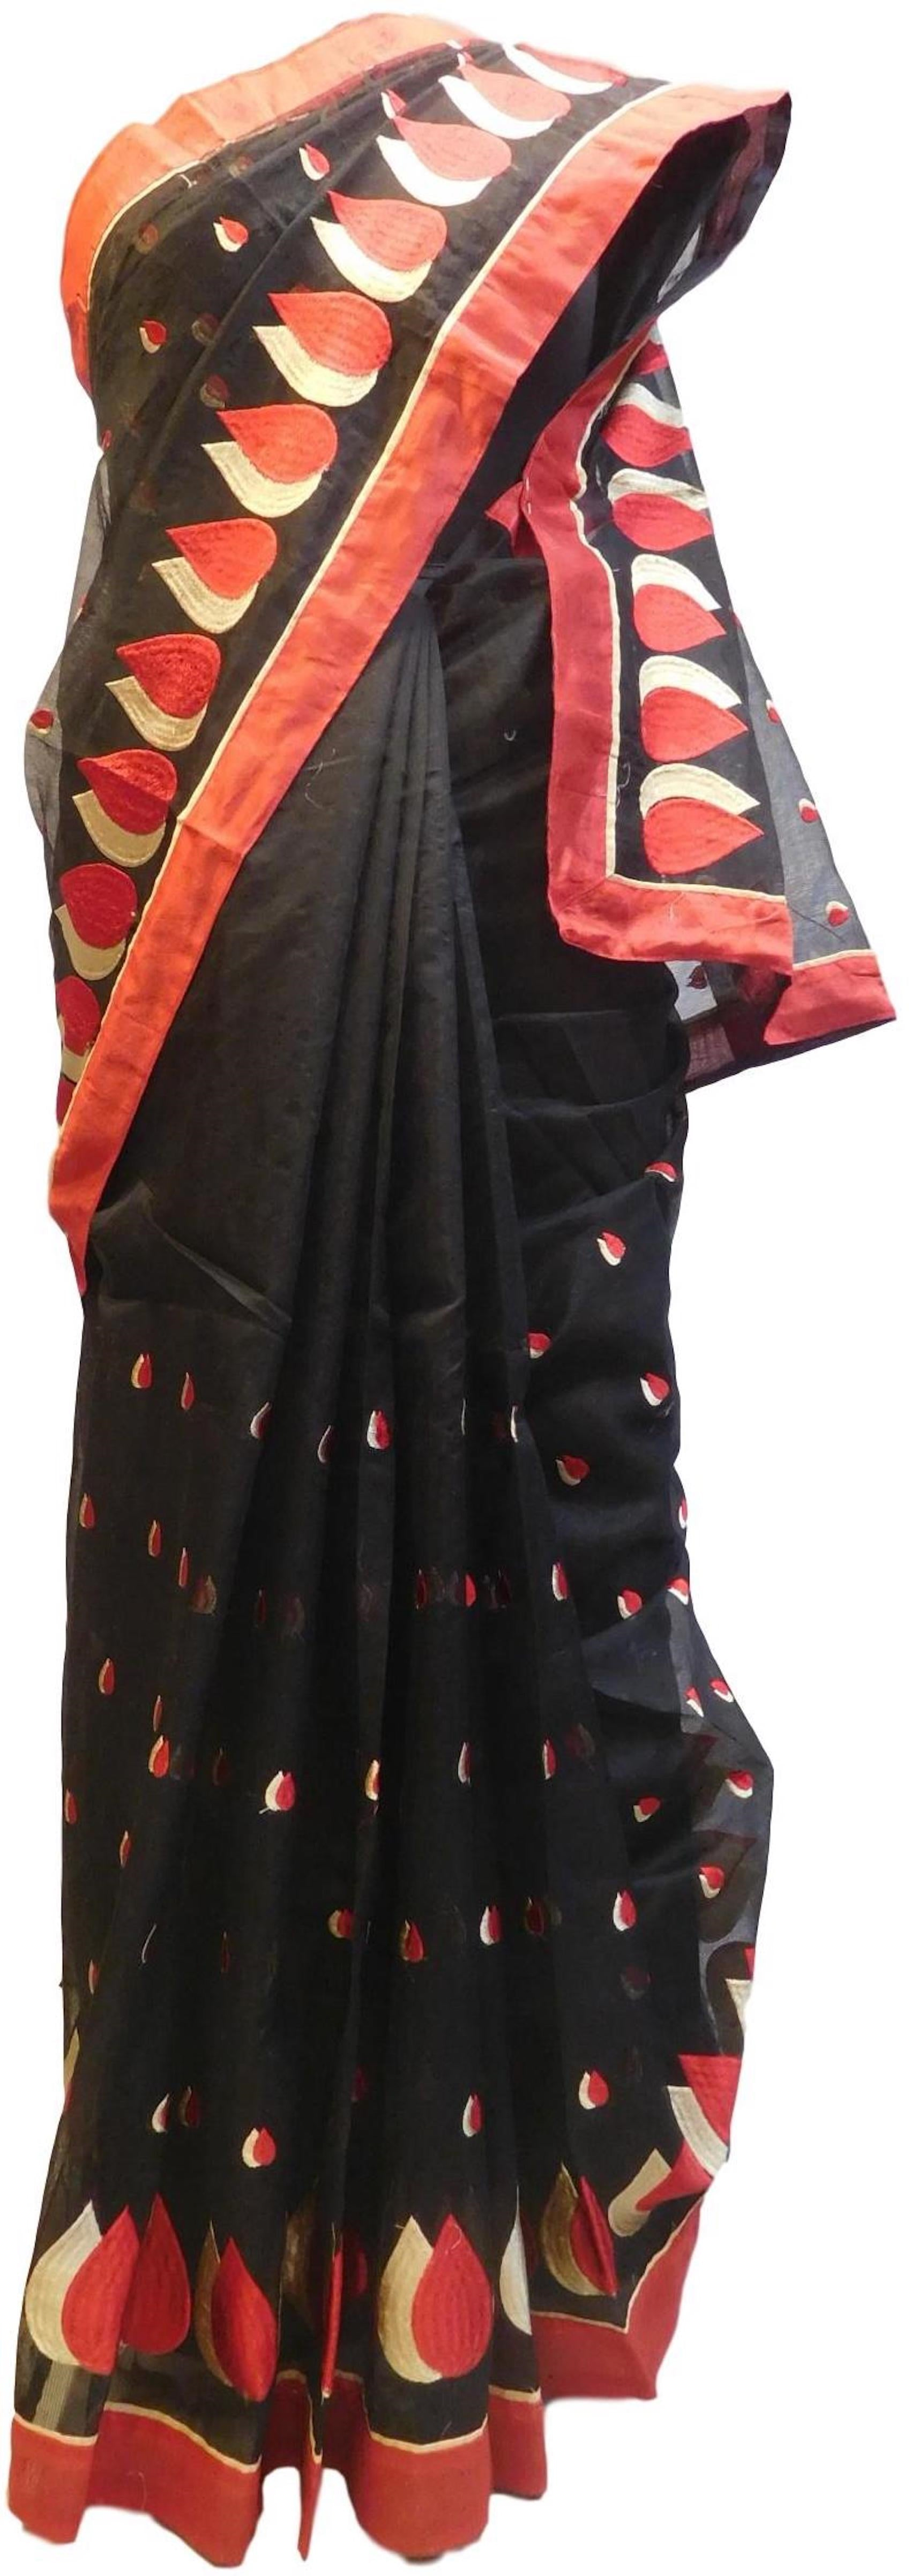 Black Designer PartyWear Pure Supernet (Cotton) Thread Work Saree Sari With Red Border E223